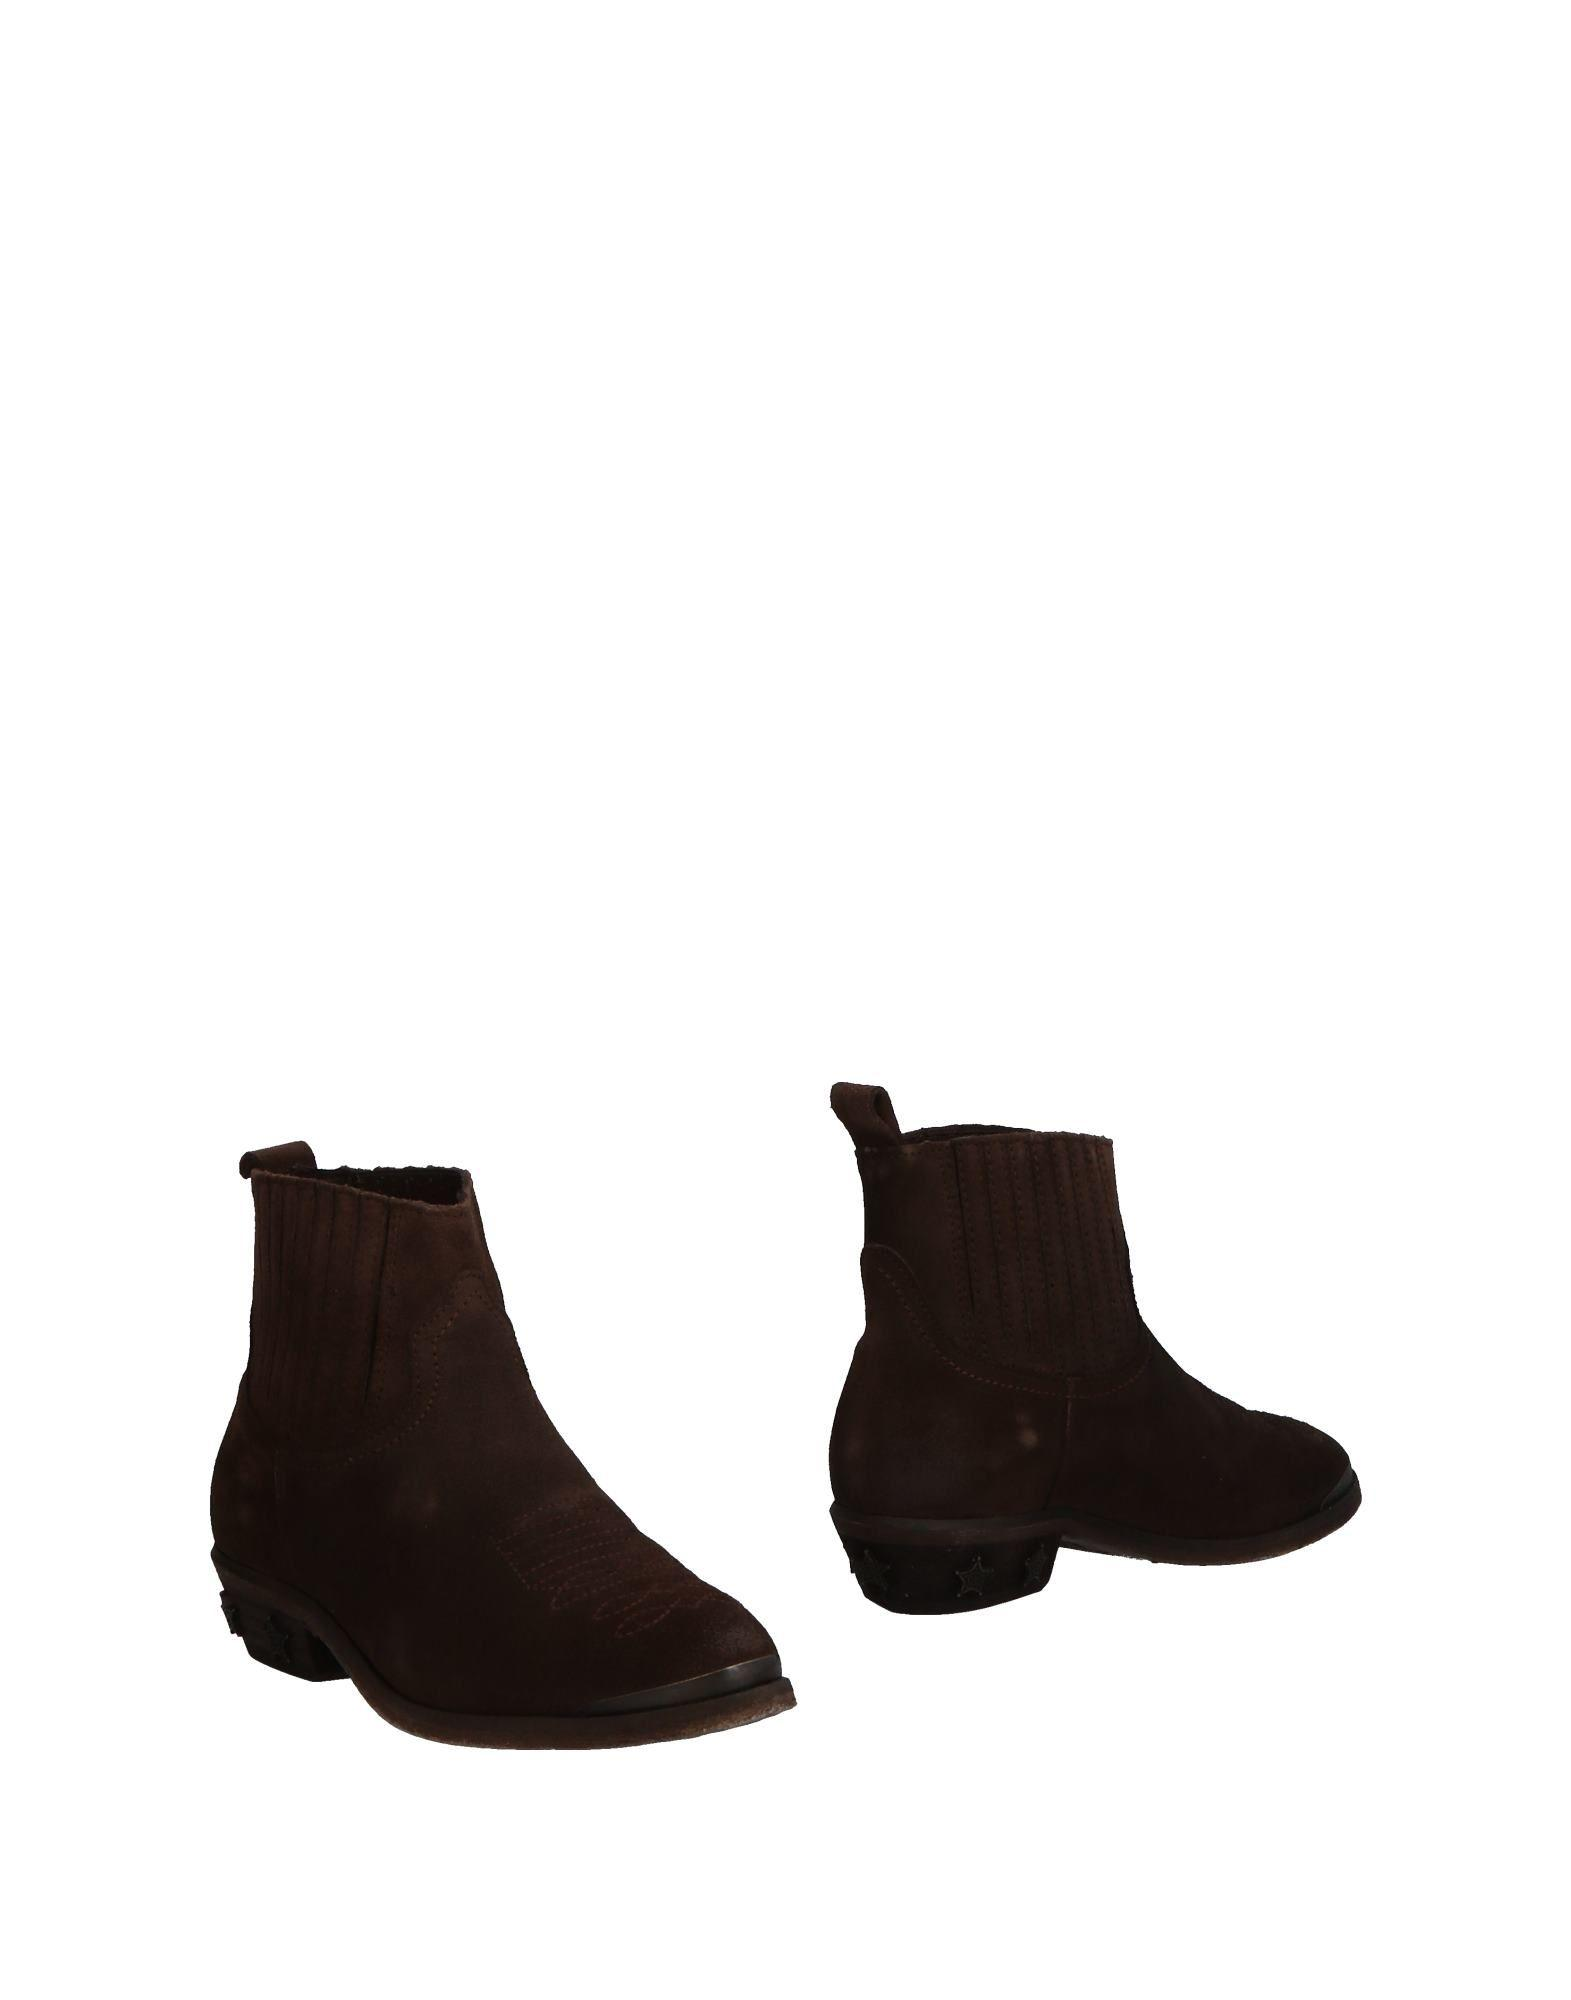 Catarina Martins Ankle Boot In Cocoa